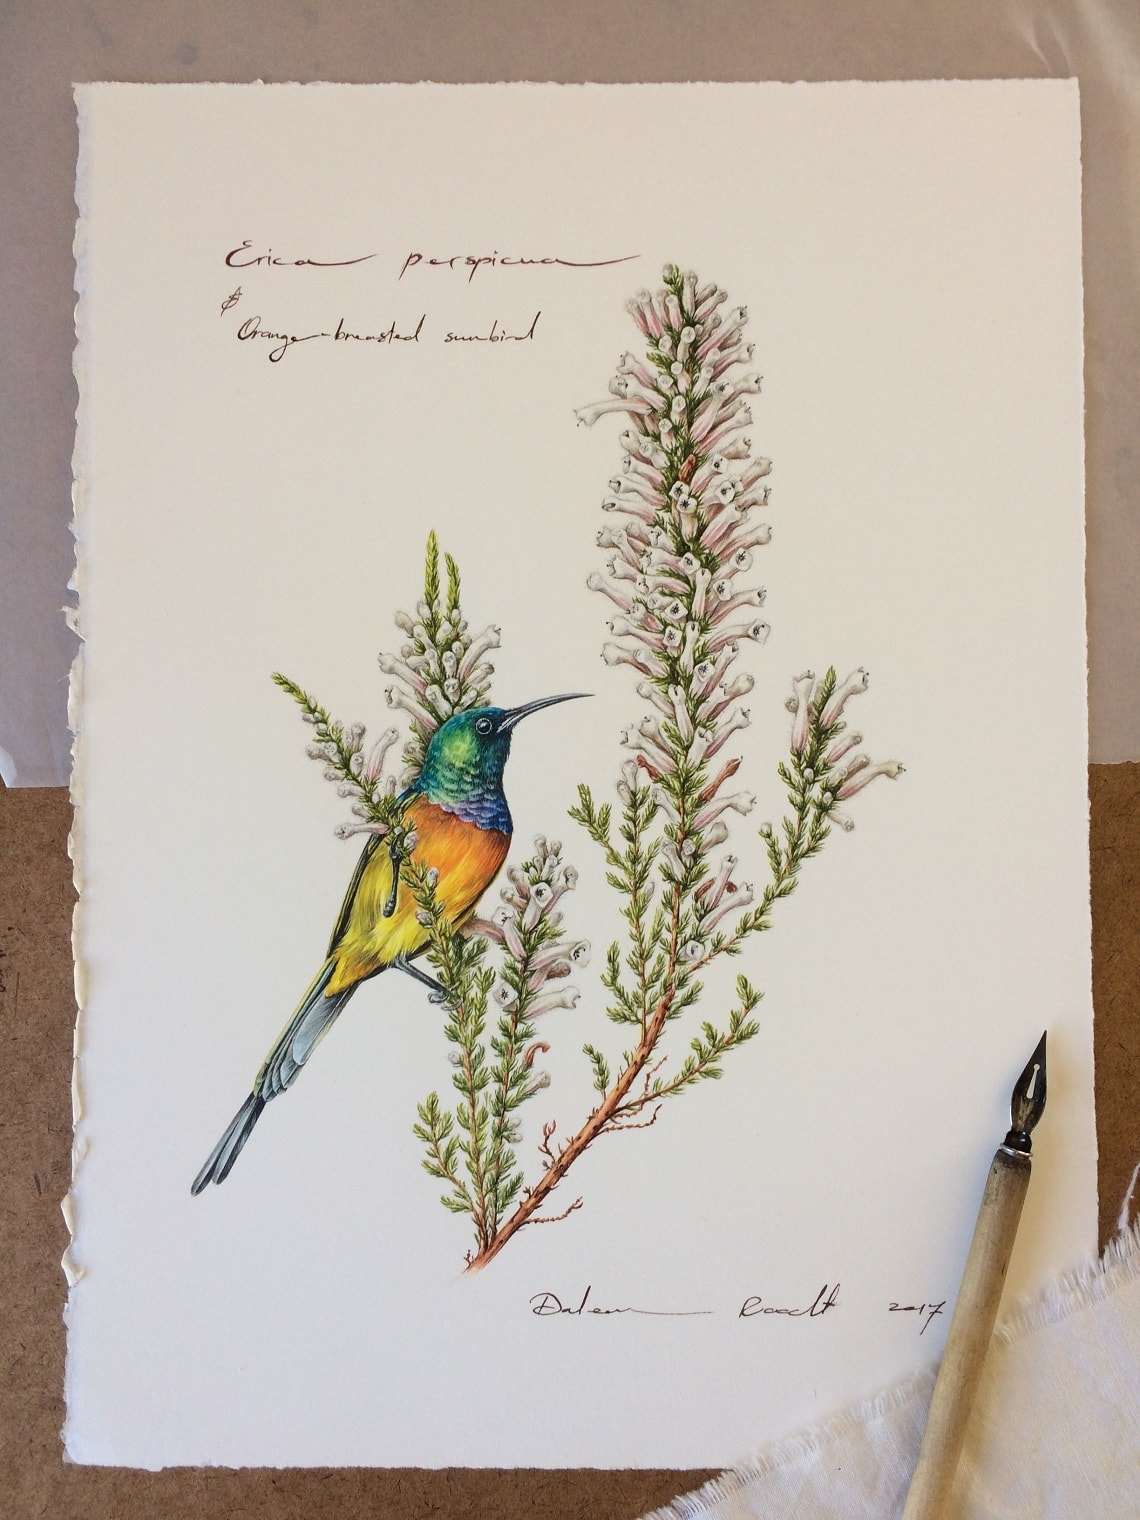 Wild botany illustrations-Daleen Roodt-5-min